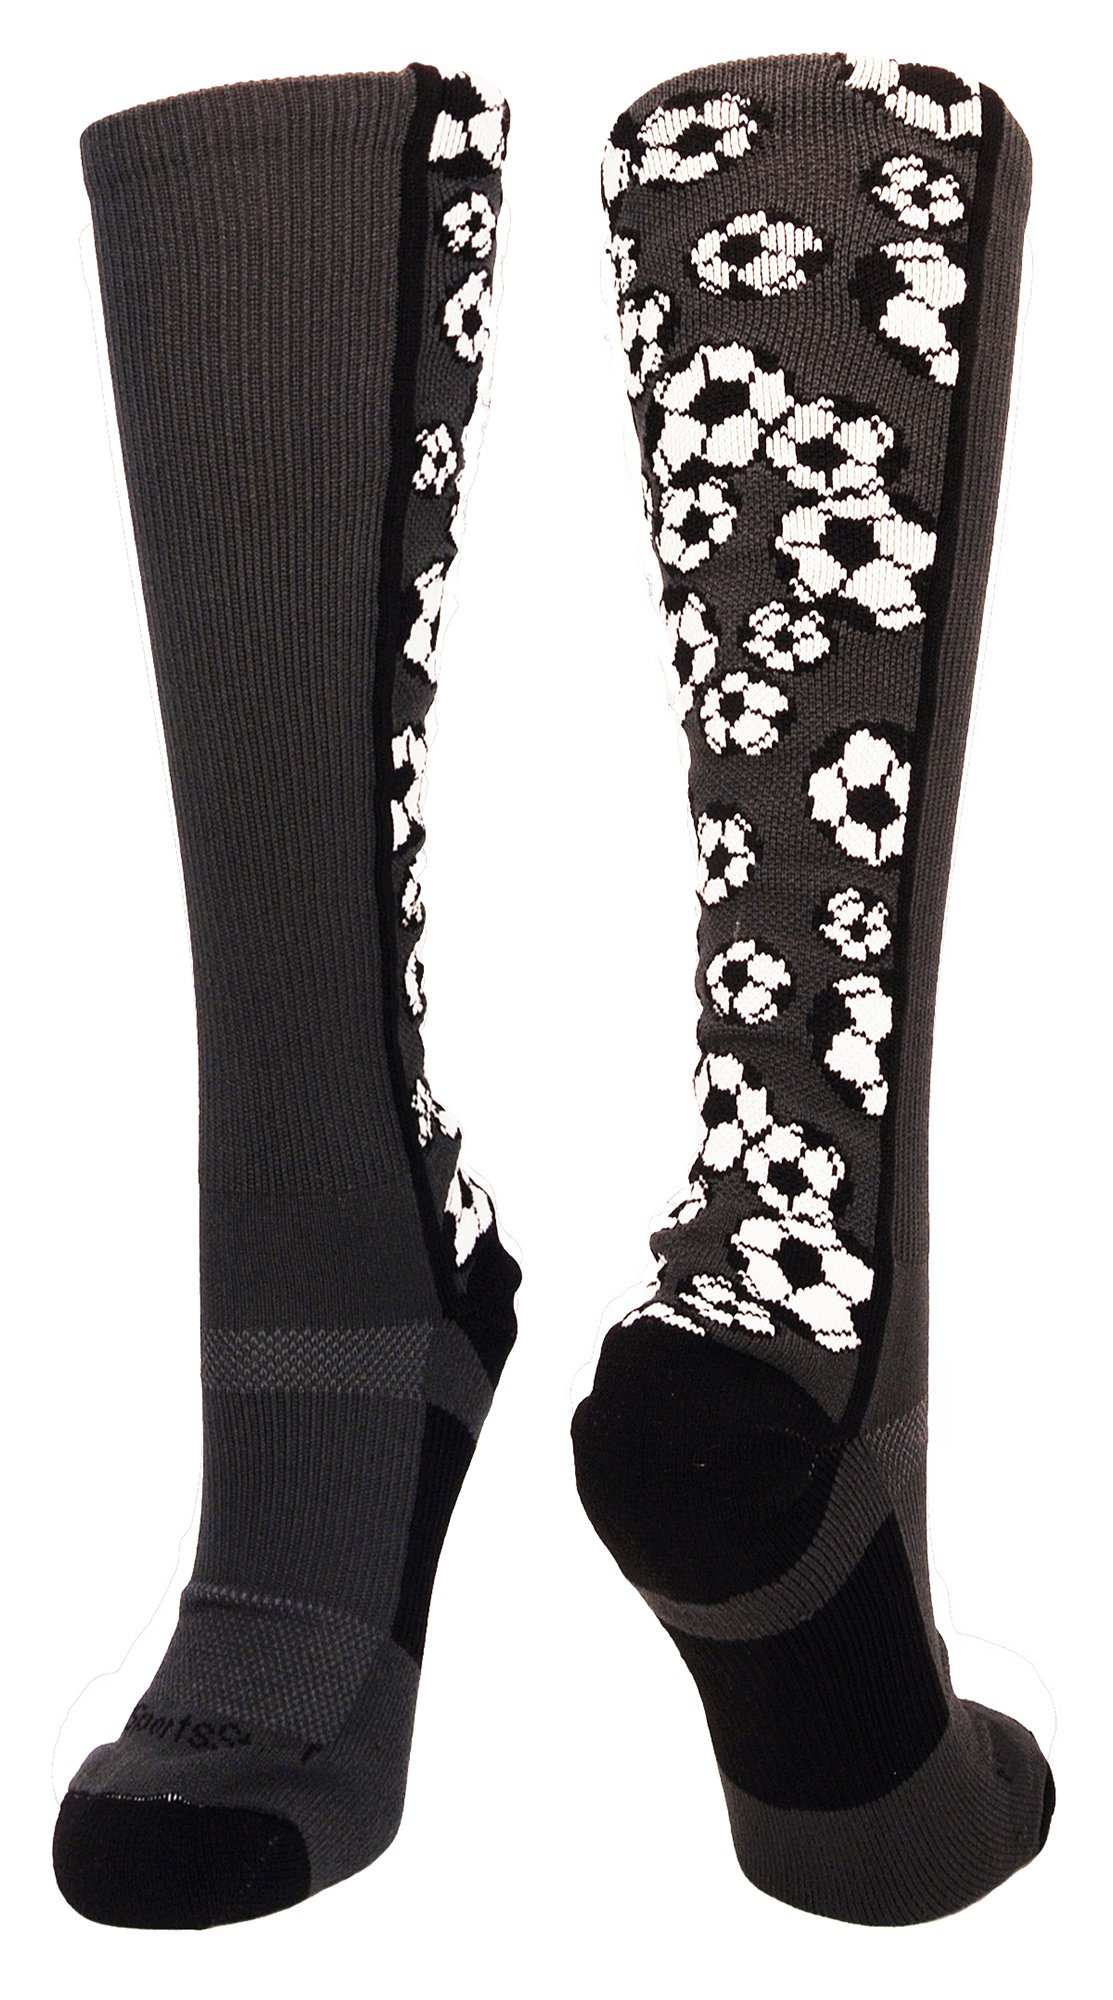 MadSportsStuff Crazy Soccer Socks with Soccer Balls Over The Calf (Graphite/Black, Large) by MadSportsStuff